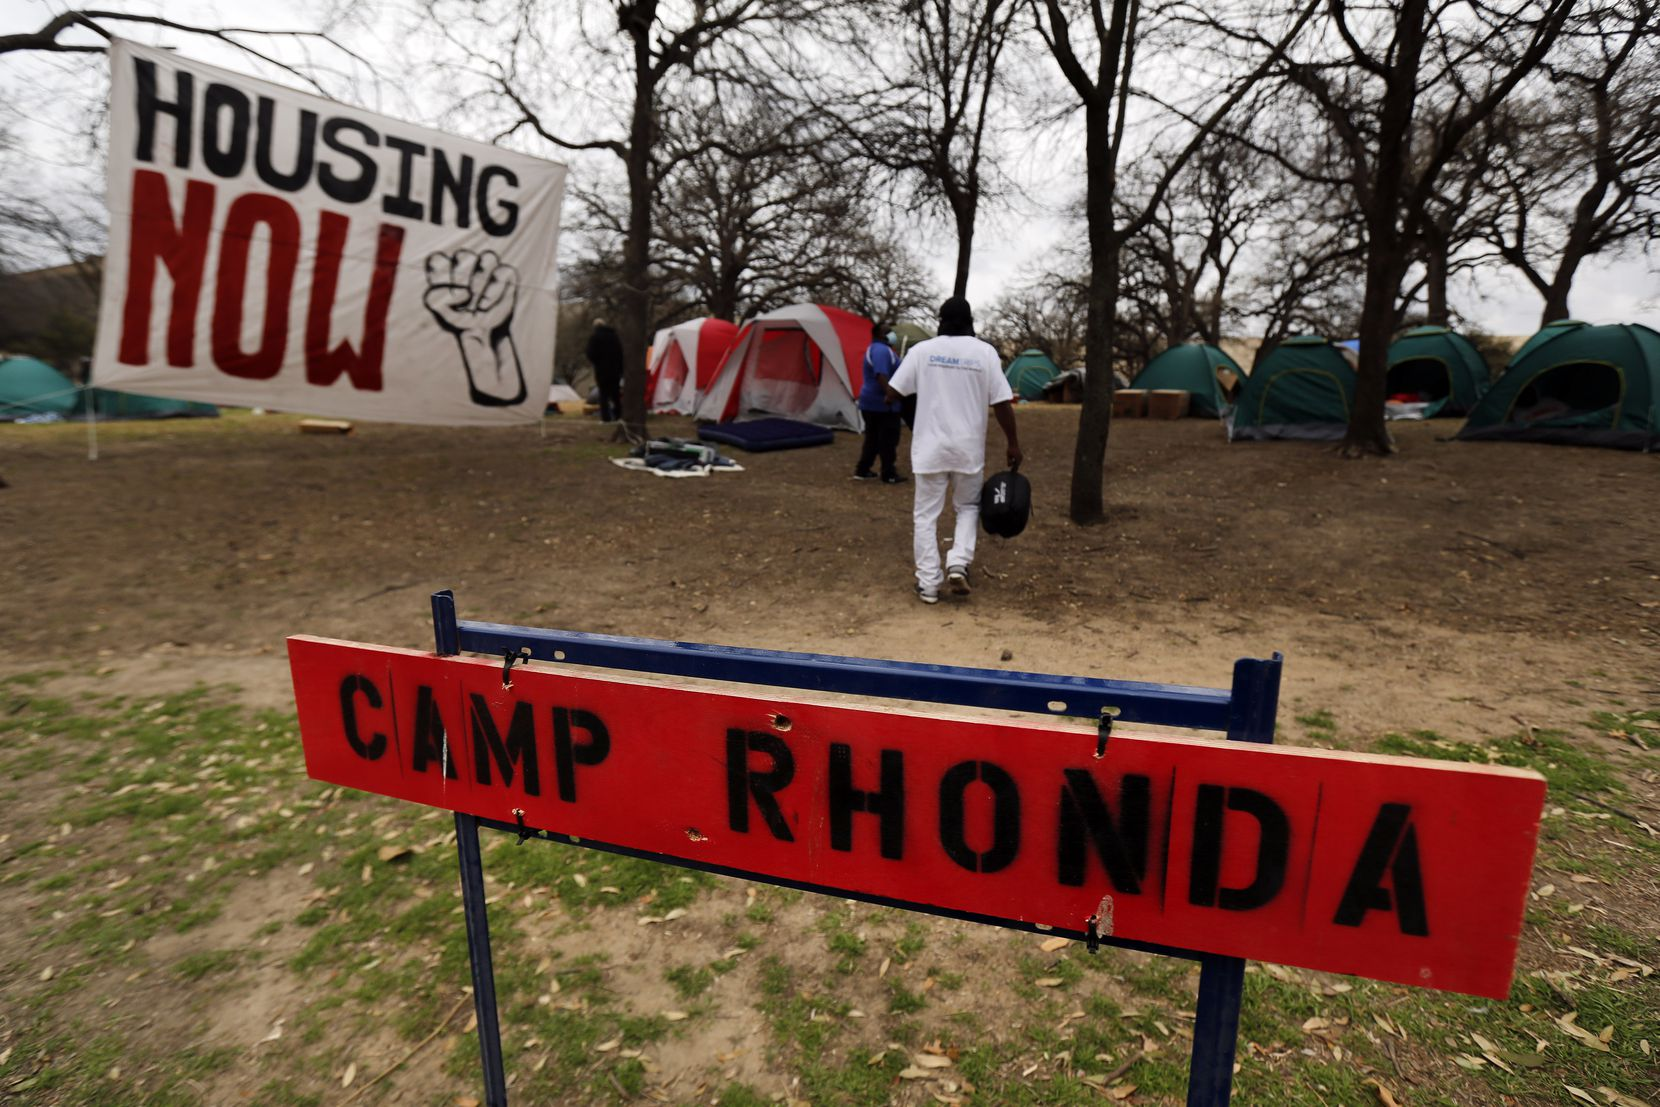 Between 30-40 people without housing setup Camp Rhonda adjacent to Pioneer Park Cemetery in downtown Dallas on Tuesday.  They are trying to bring awareness to the constant movement of unhoused people by the city and that they need some permanency for the ongoing issue.